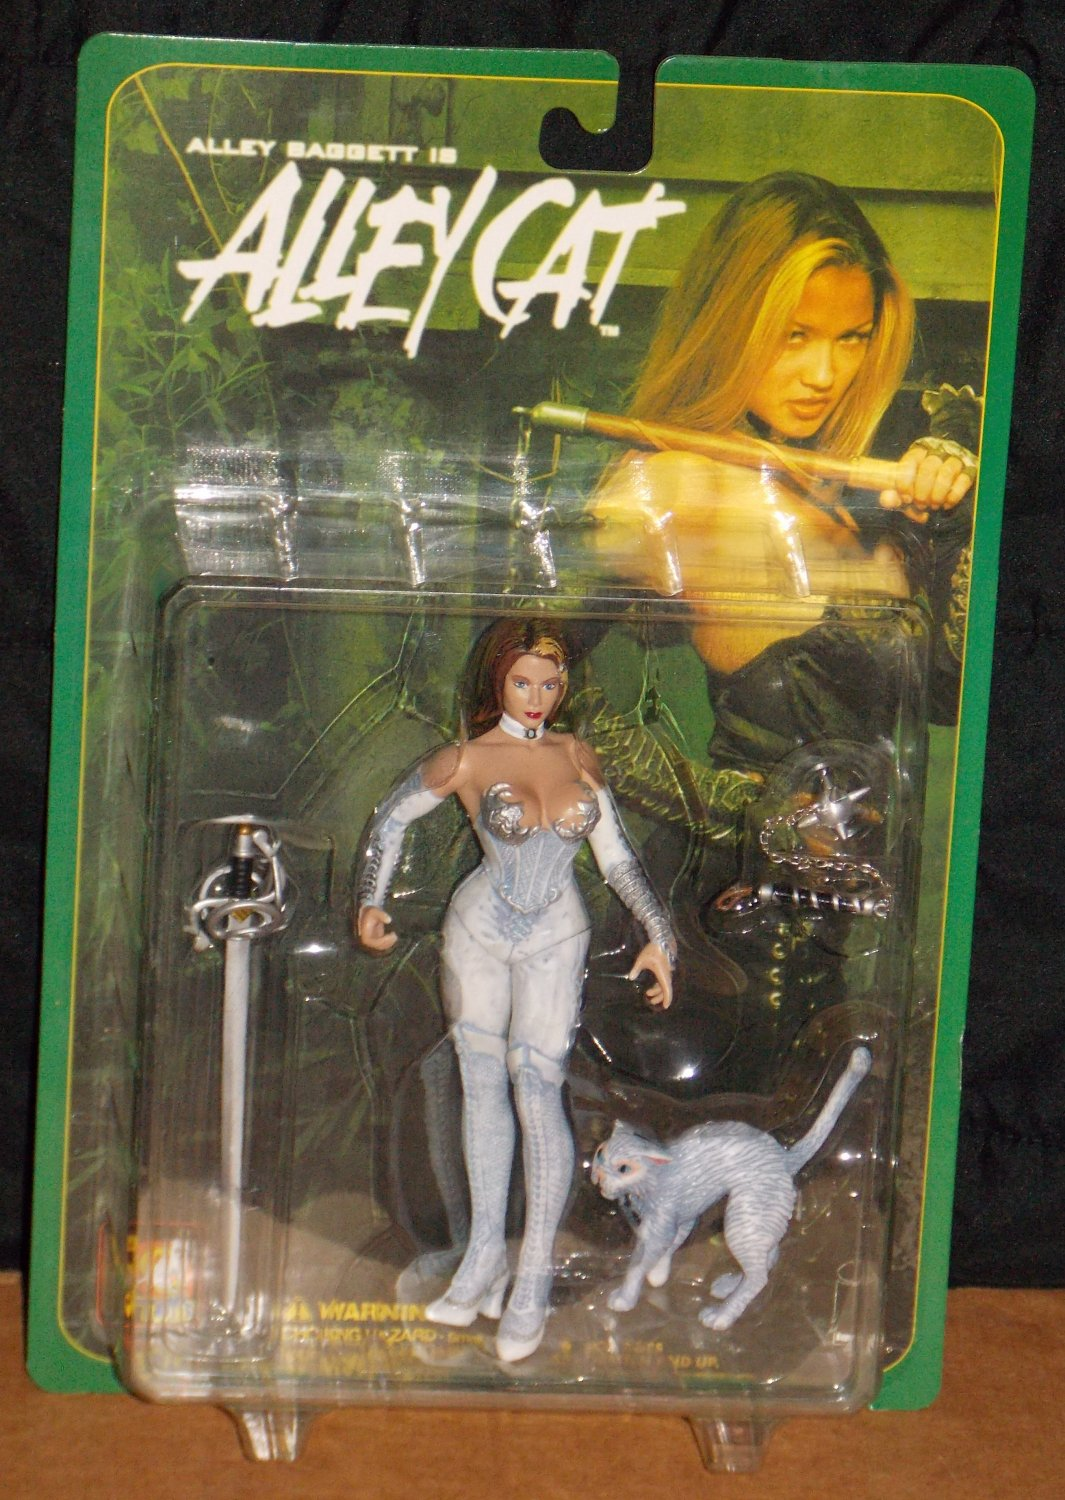 sc 1 st  krjgifts - eCRATER & Alley Baggett Is Alley Cat White Costume (1999) Sealed